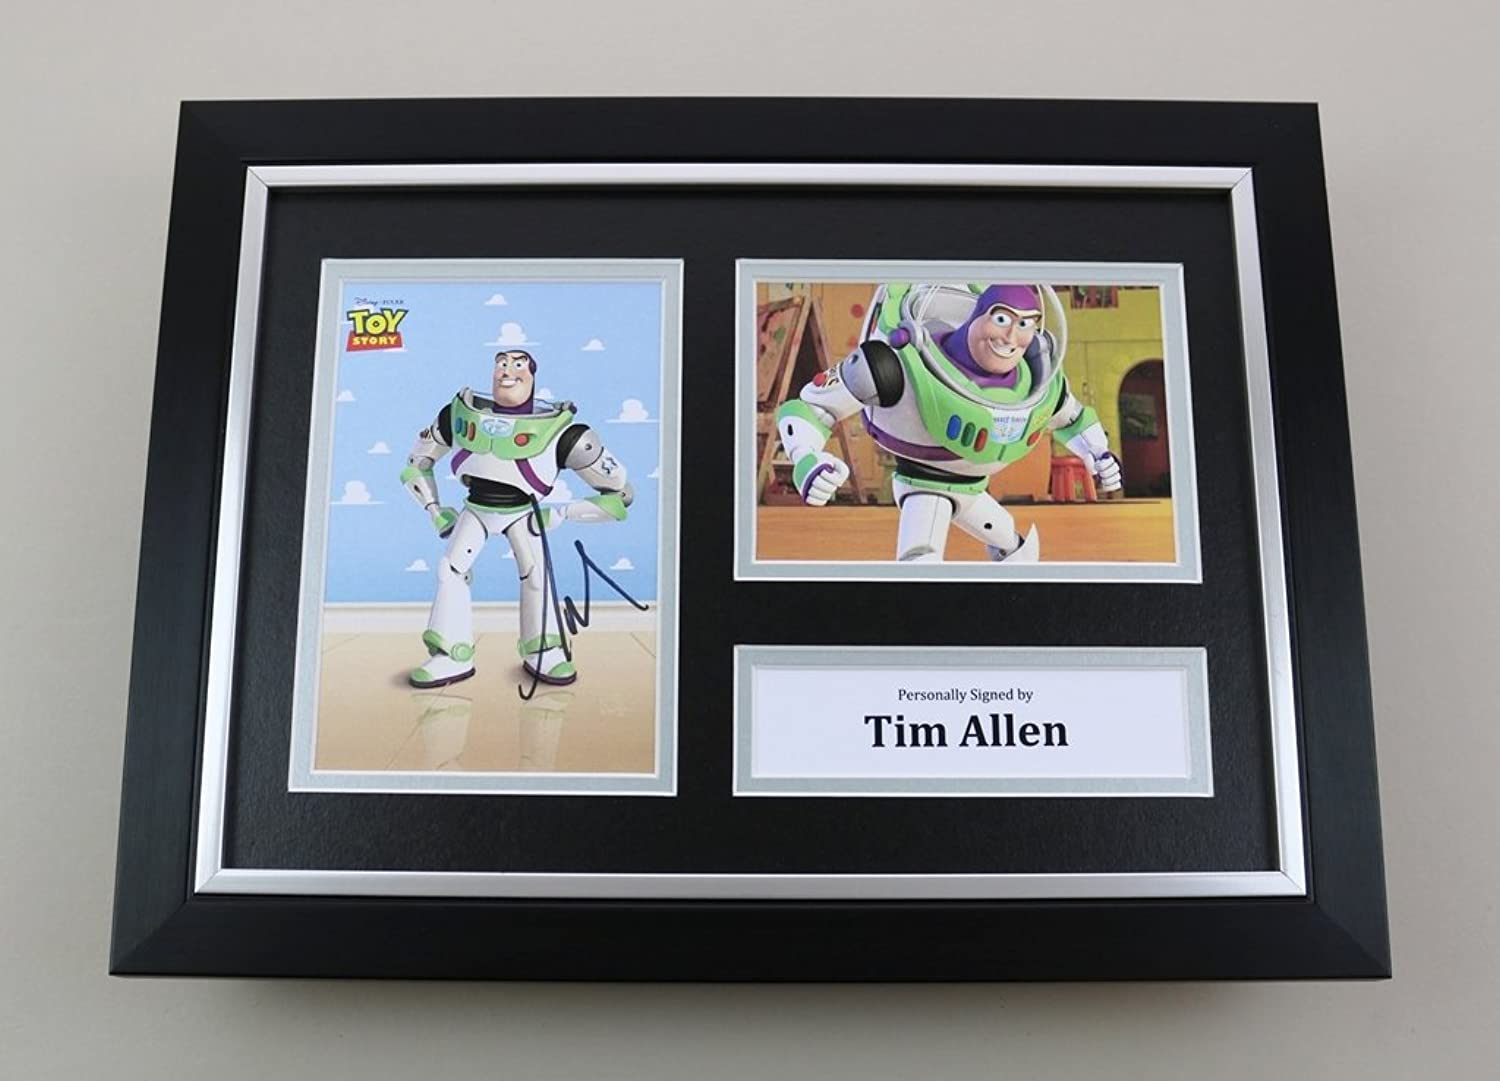 Tim Allen Signed A4 Photo Framed Toy Story Memorabilia Autograph Display COA